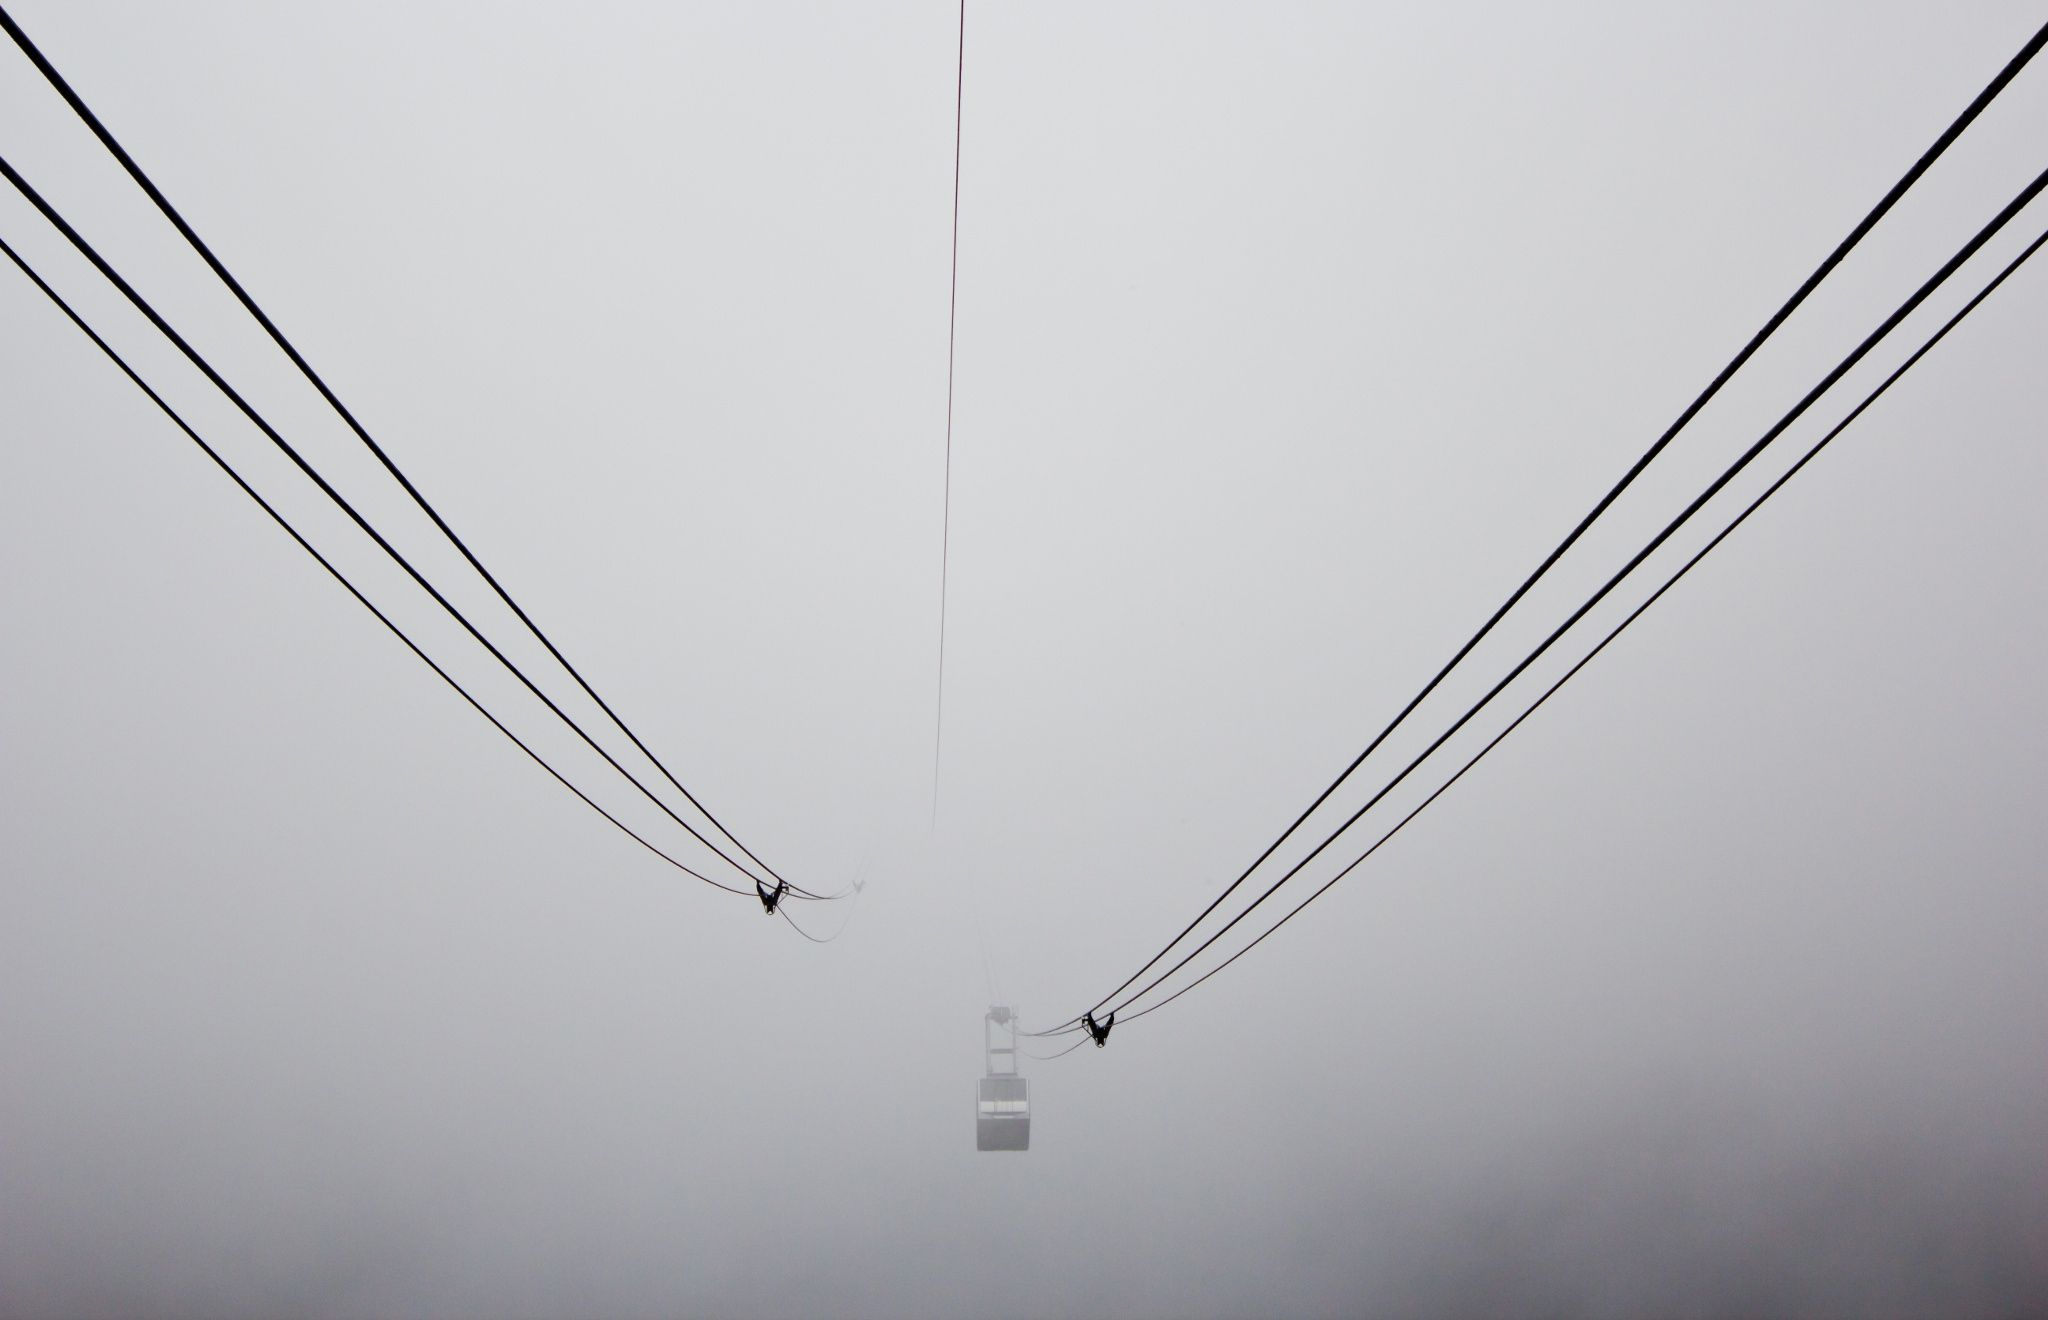 500px에서 활동 중인 Brad Hammonds님의 사진 Passing Silently Through the Fog